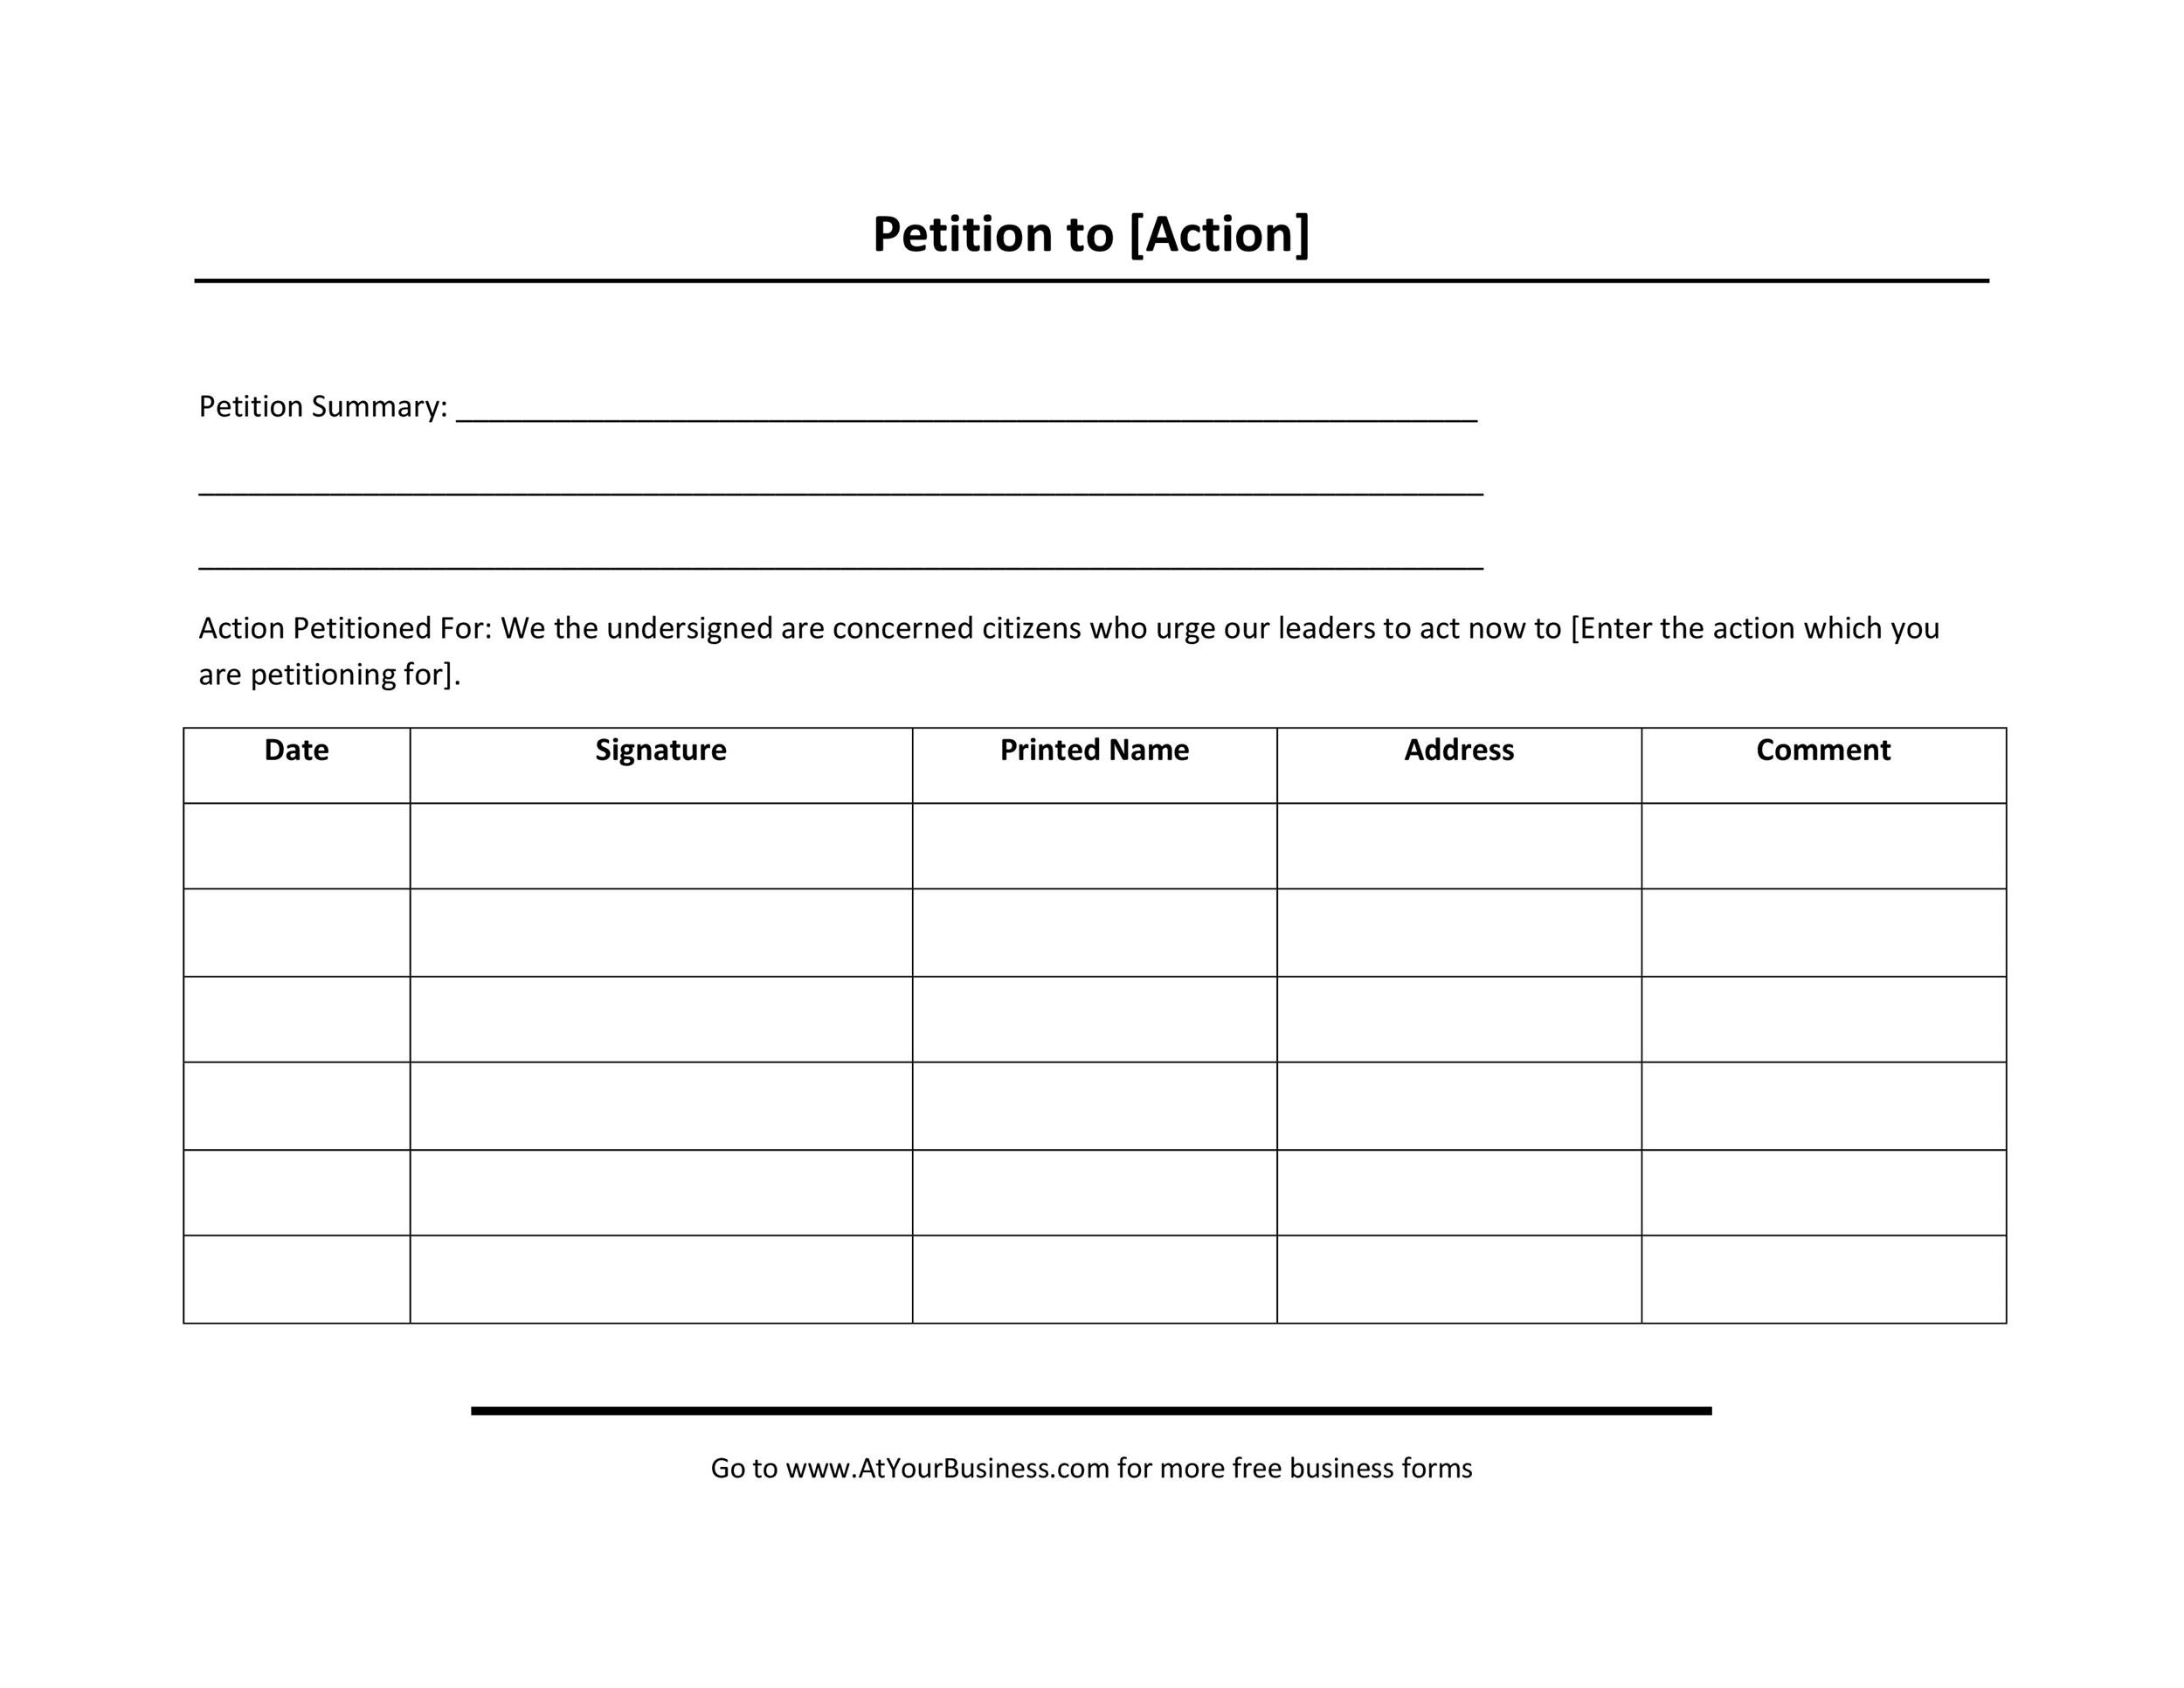 blank petition form to print - Ozilalmanoof